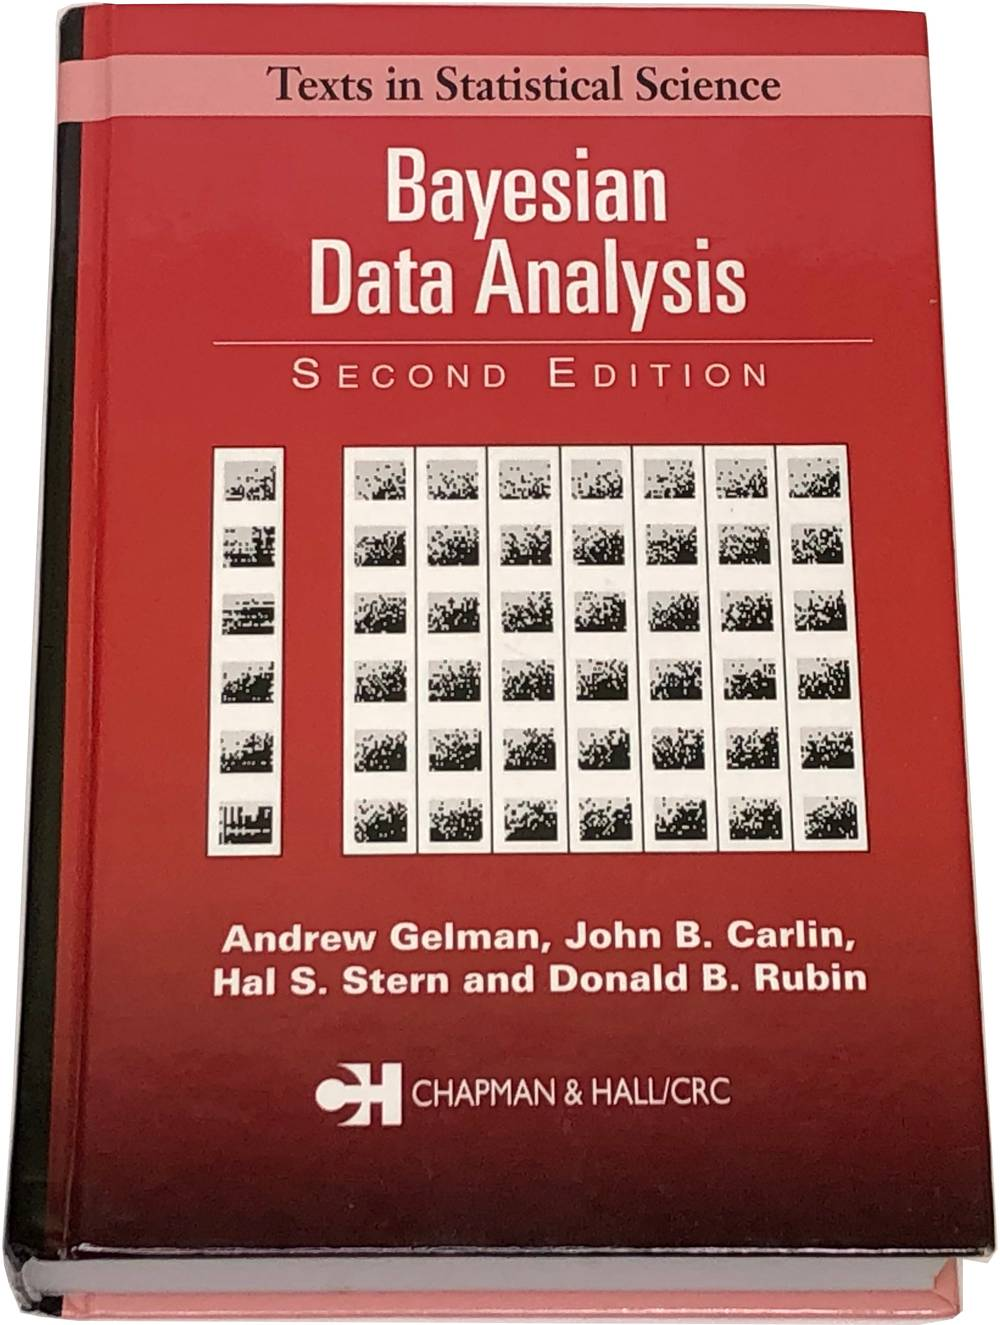 The Best Books on Bayesian Analysis